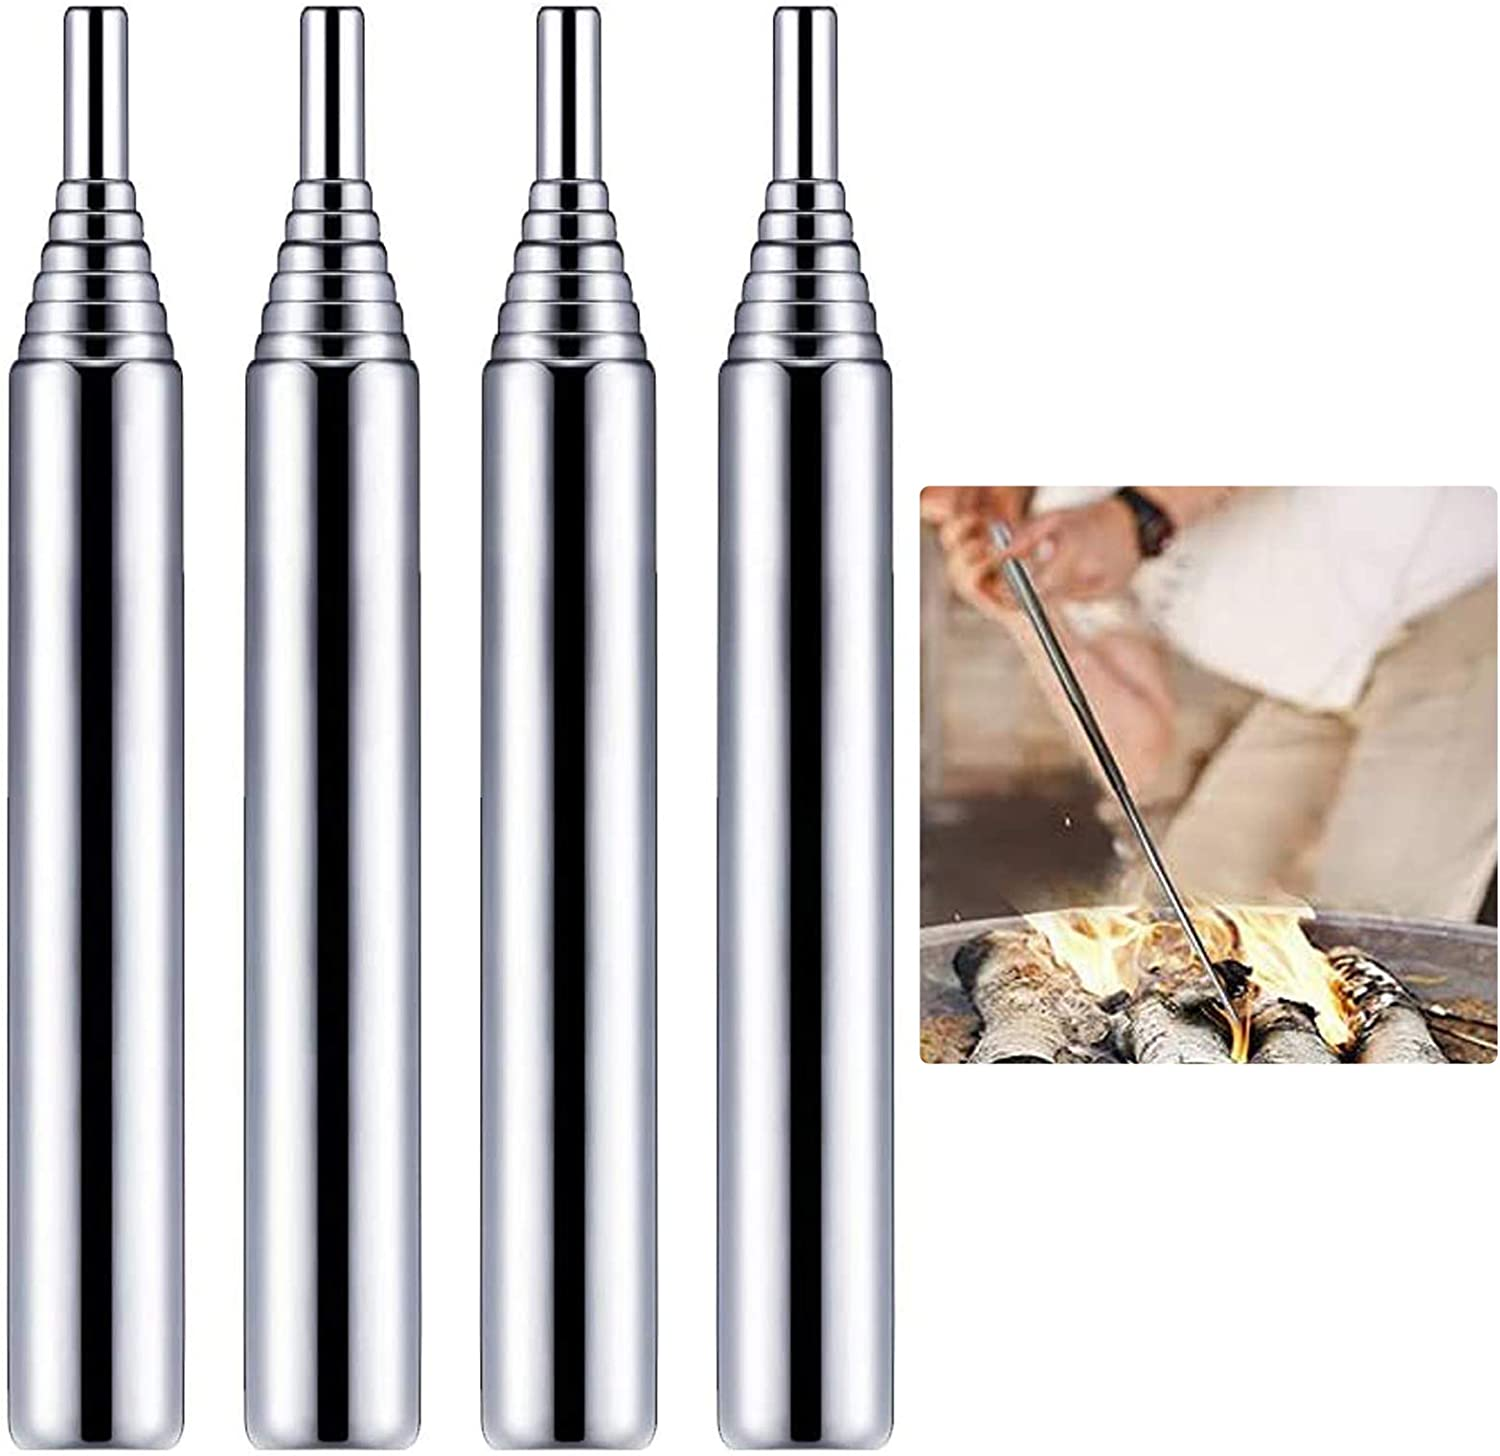 Haploon 10 Pieces Discount is also underway Fire Outlet sale feature Tube Telescopic Gear Fir Steel Stainless